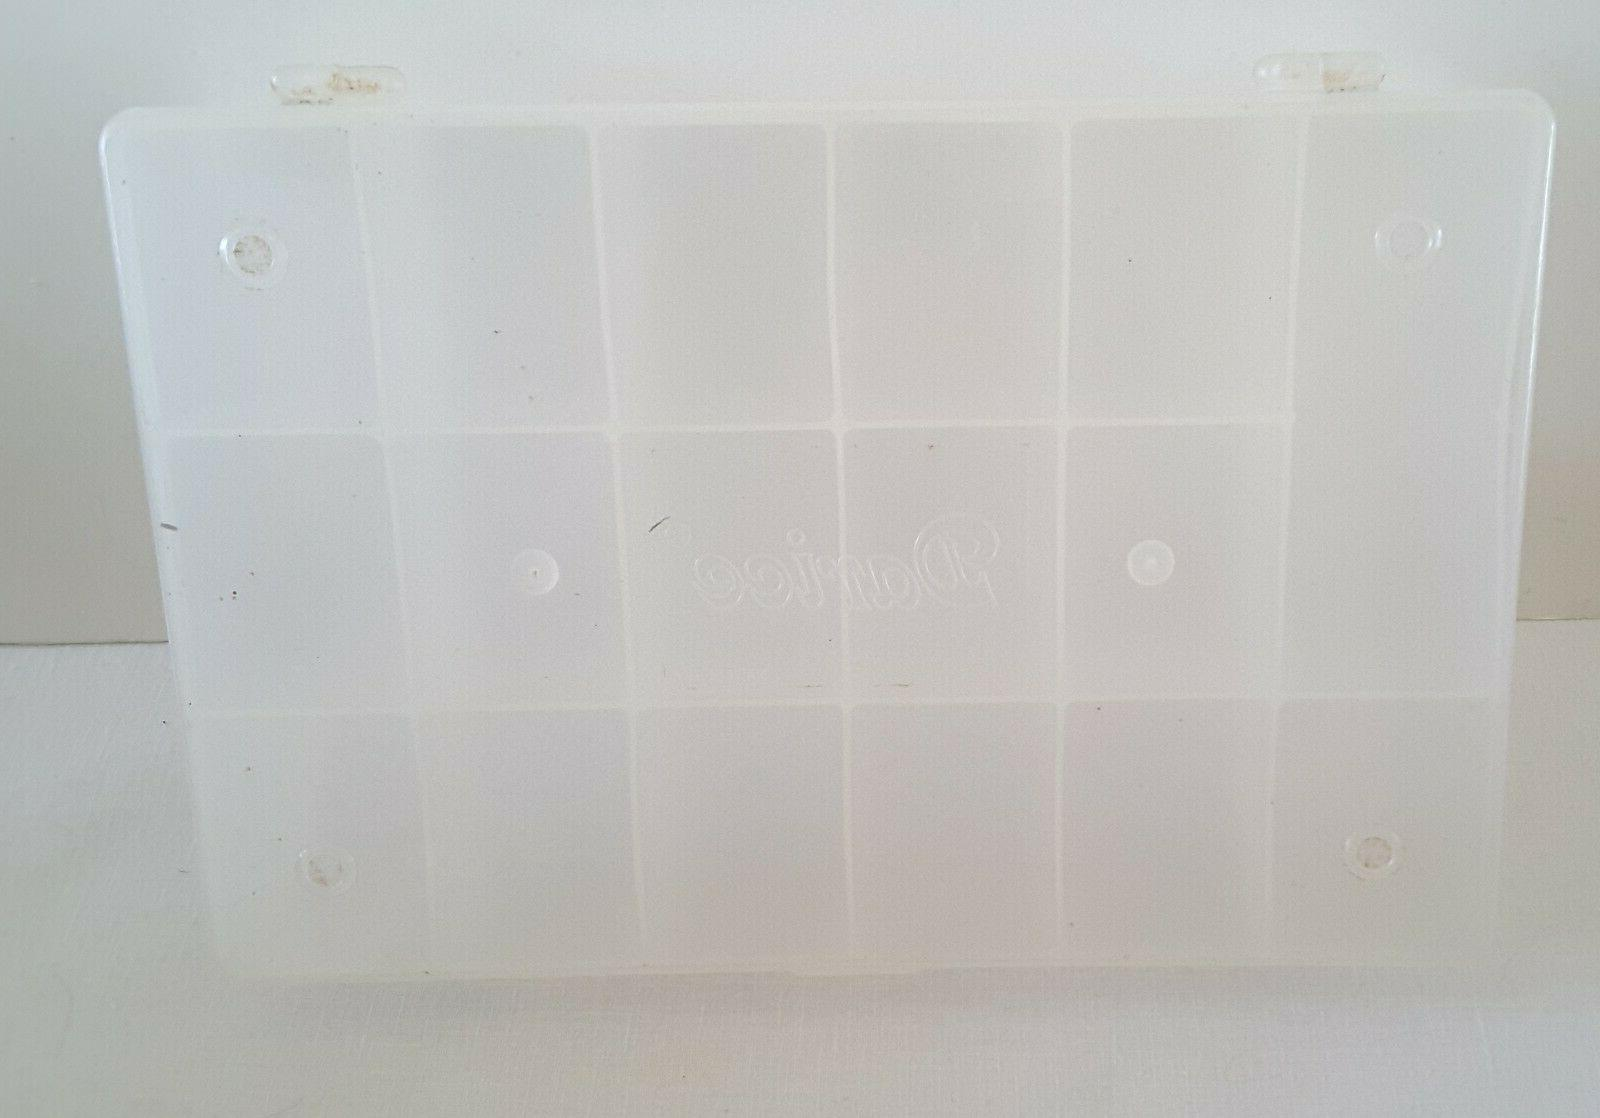 Clear Plastic Box Compartments For Fishing, Anything